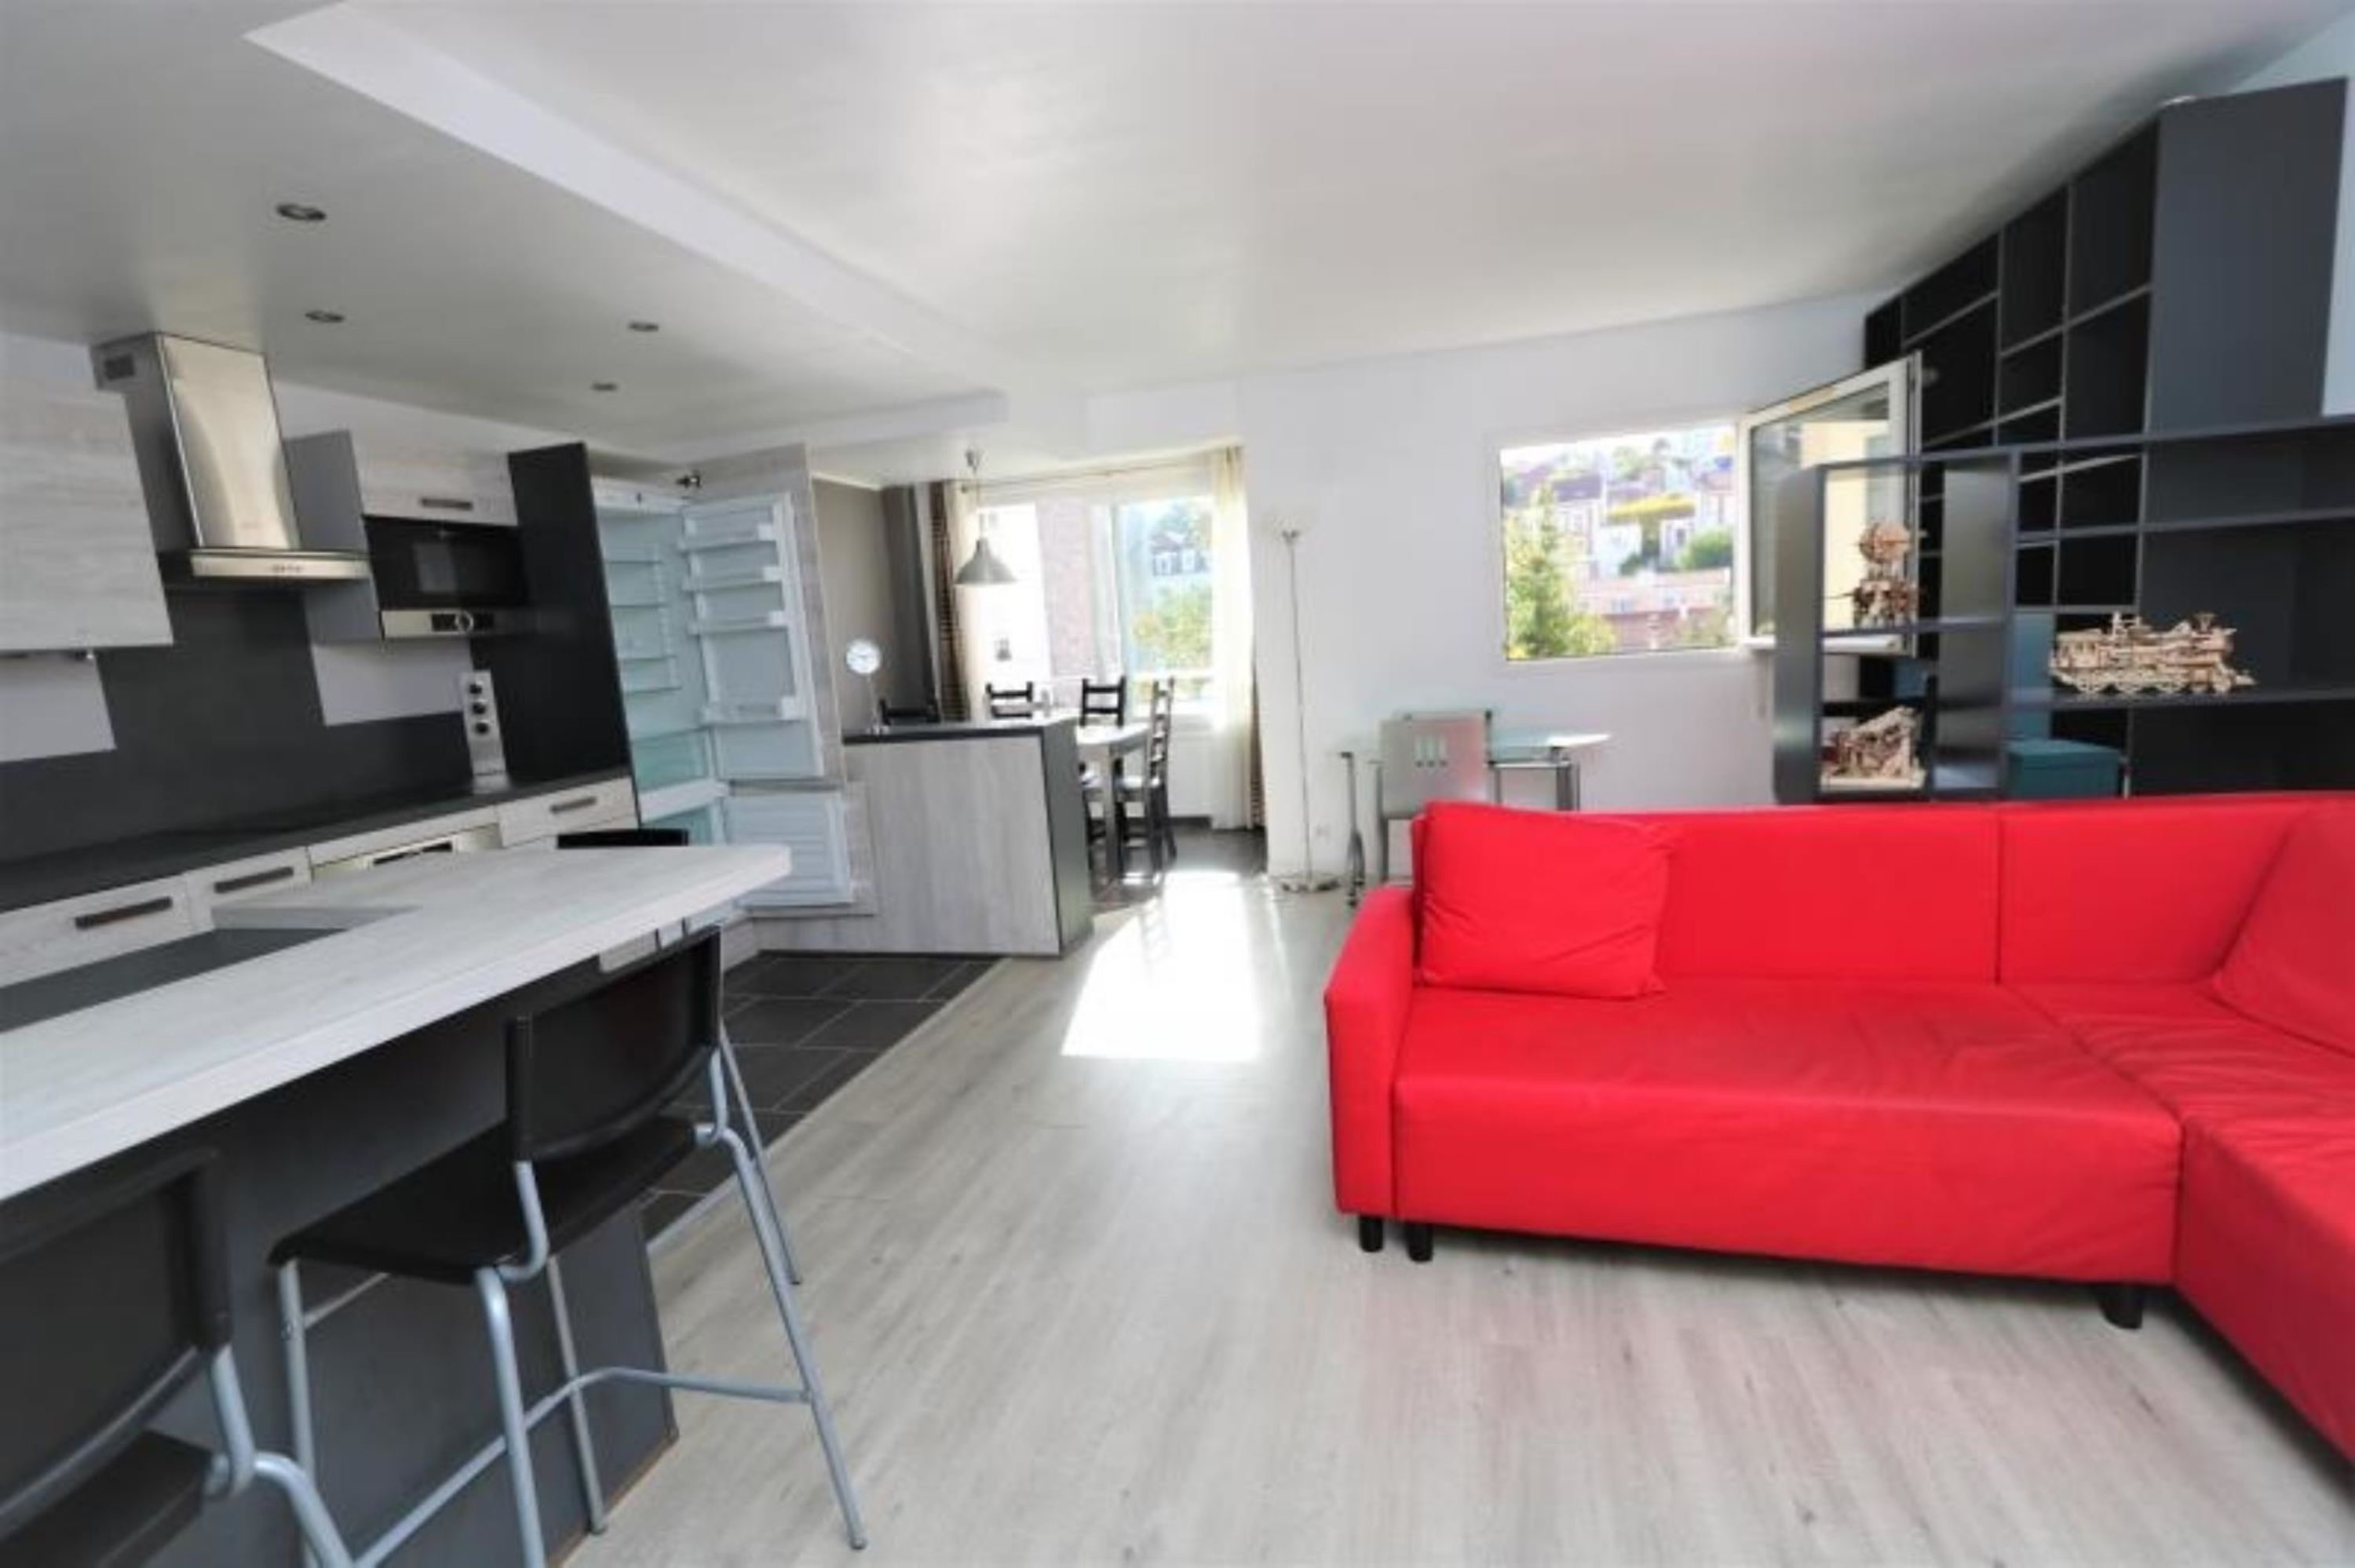 agence immobilière sevres 92 le chesnay 78 achat vente location appartement maison immobilier LMHT ANF FJBCMVLU